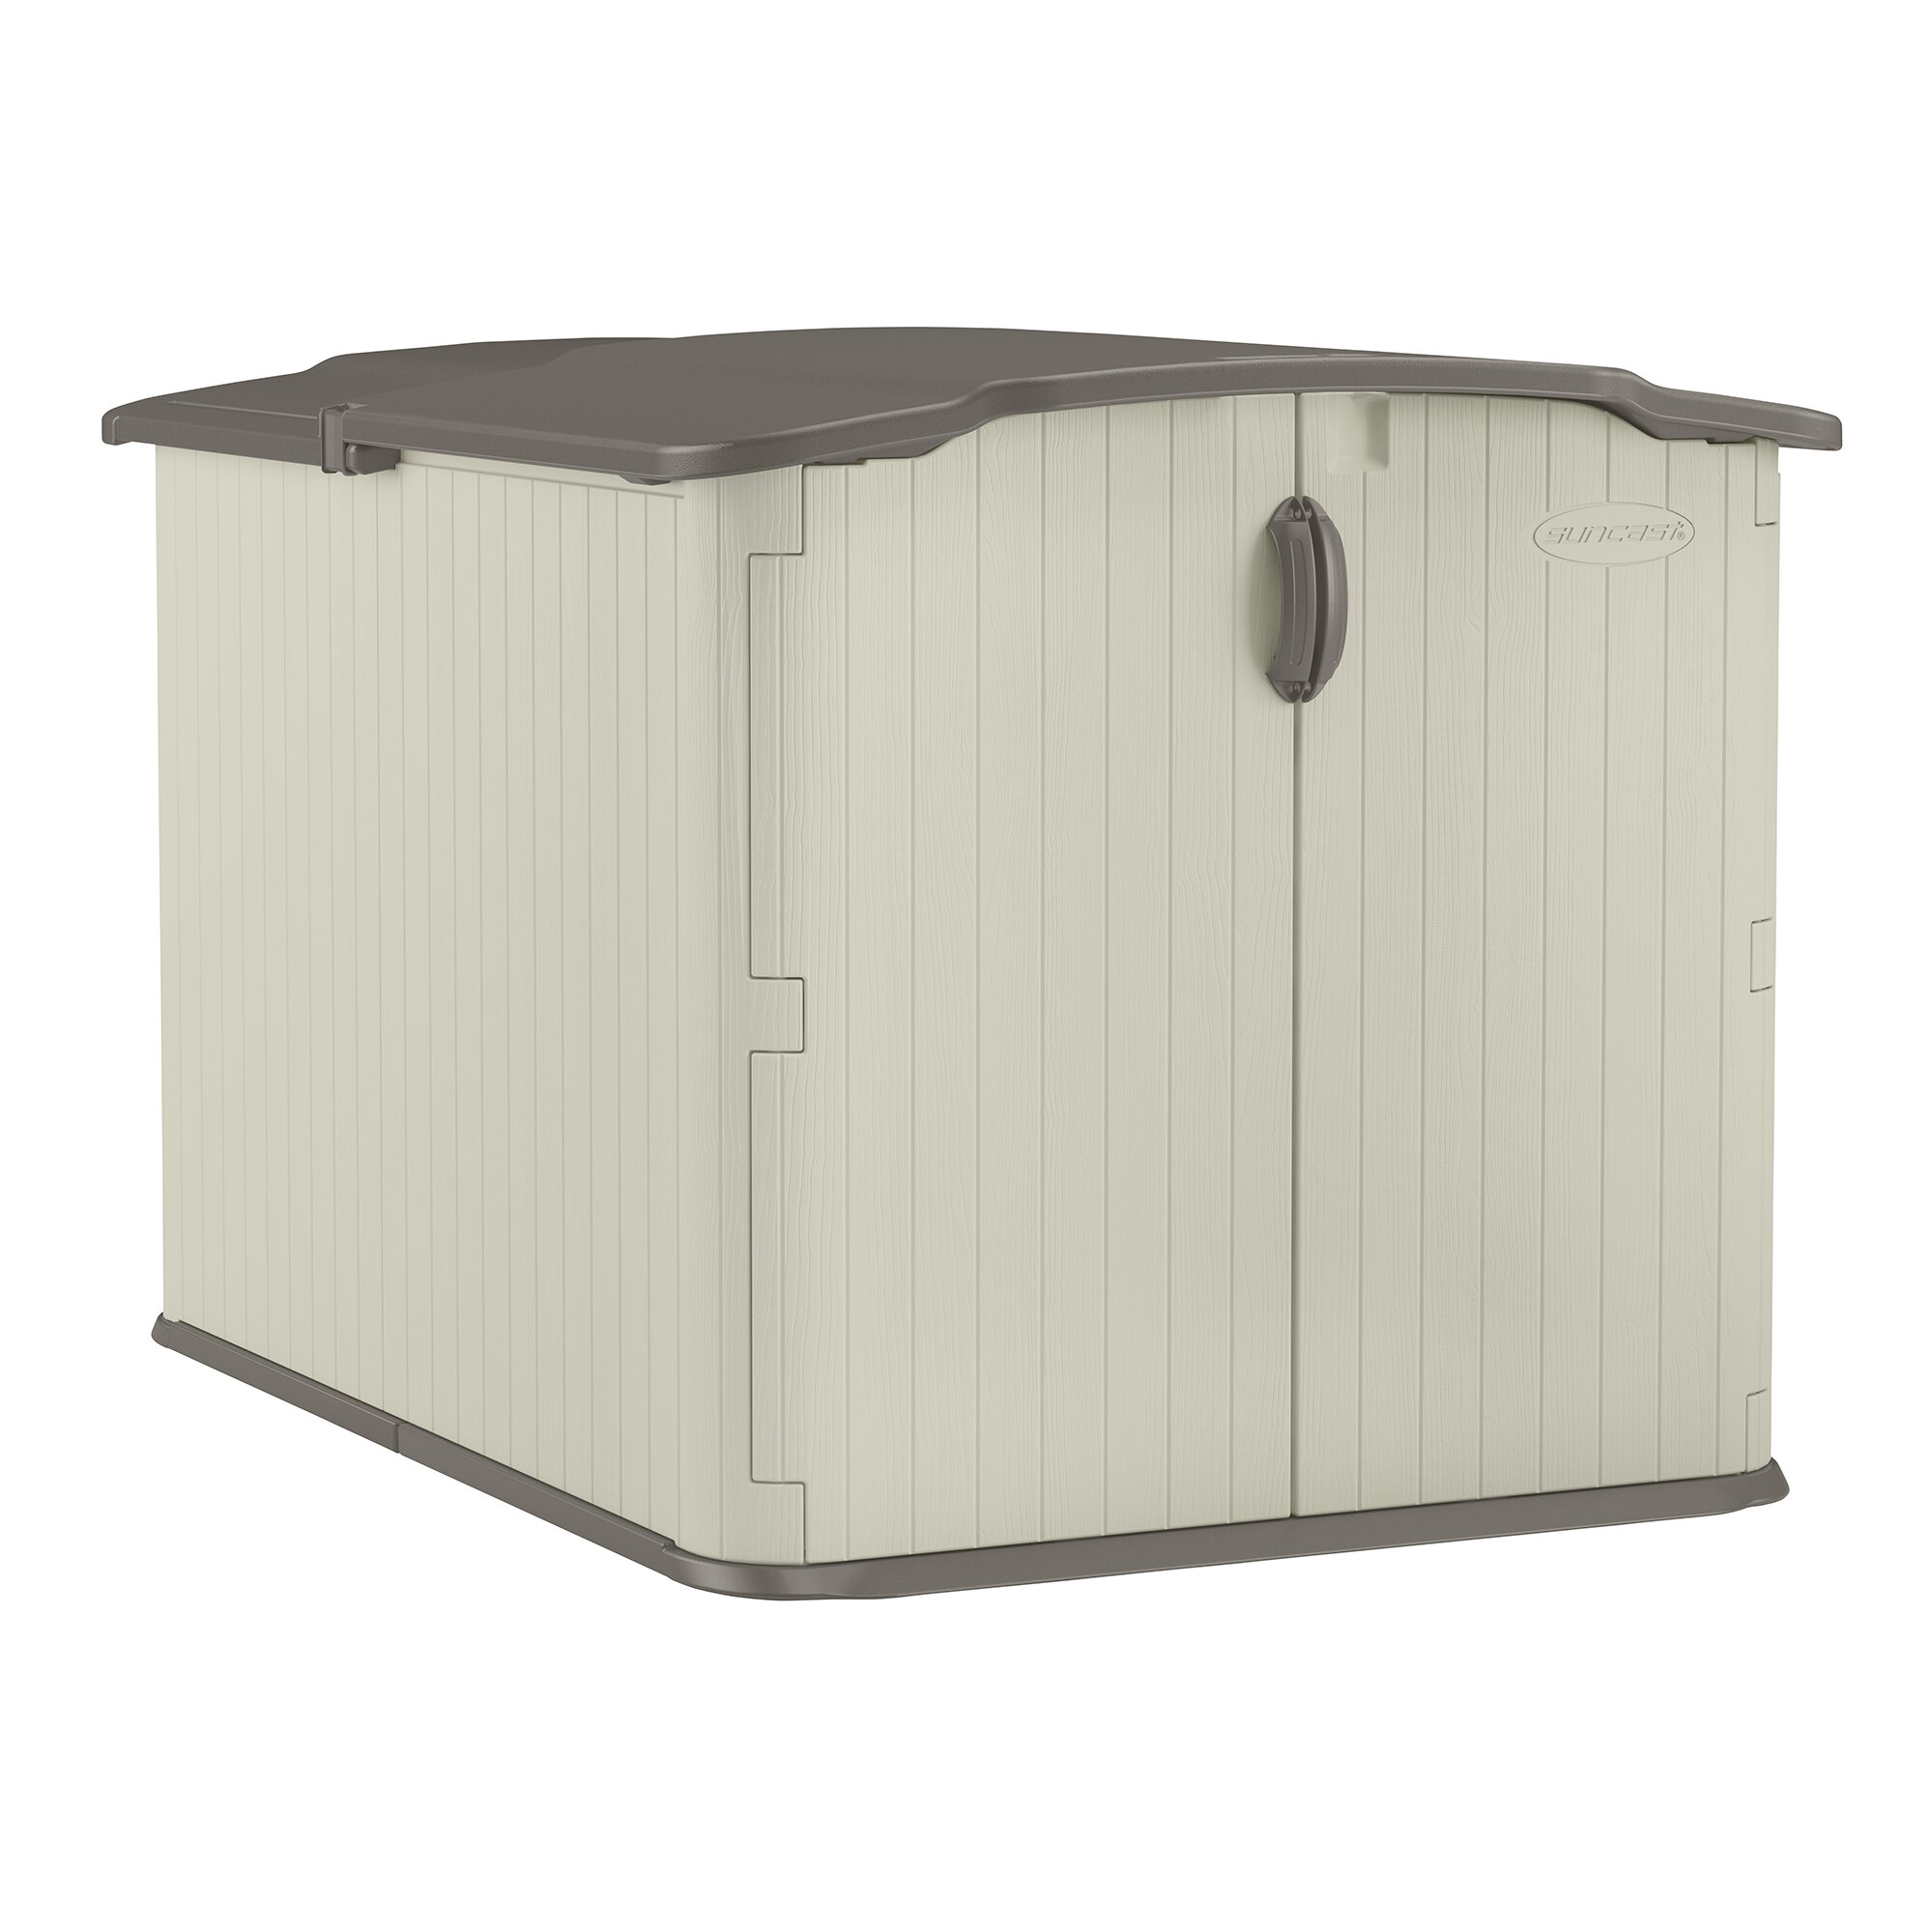 Symple stuff 5 ft w x 7 ft d plastic storage shed for Garden shed 7 x 5